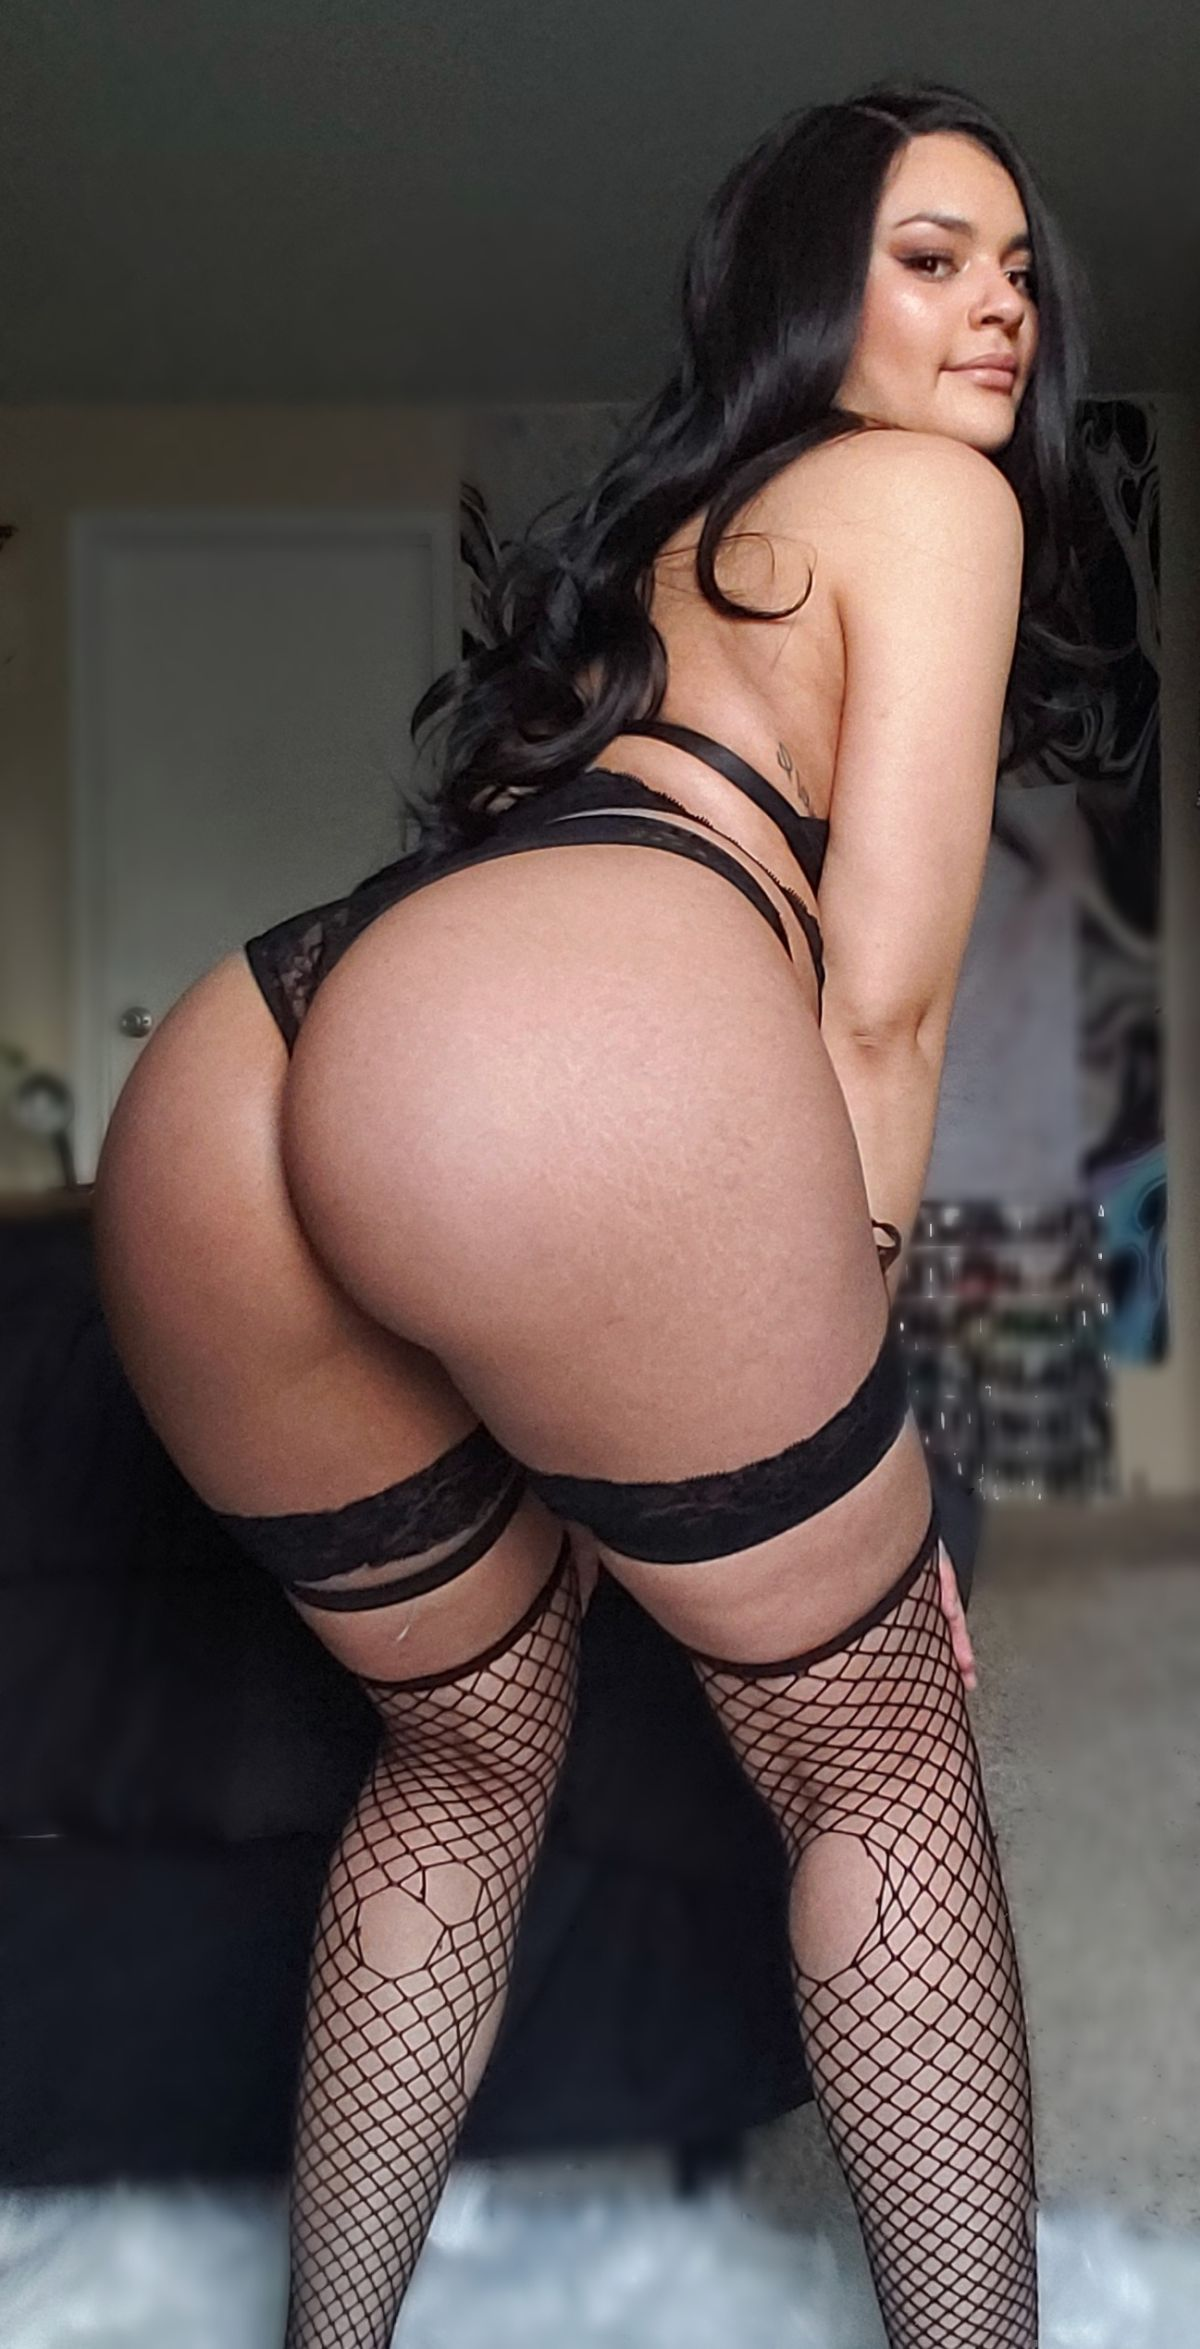 Onlyfans BlaxicanBabe onlyfans leaked